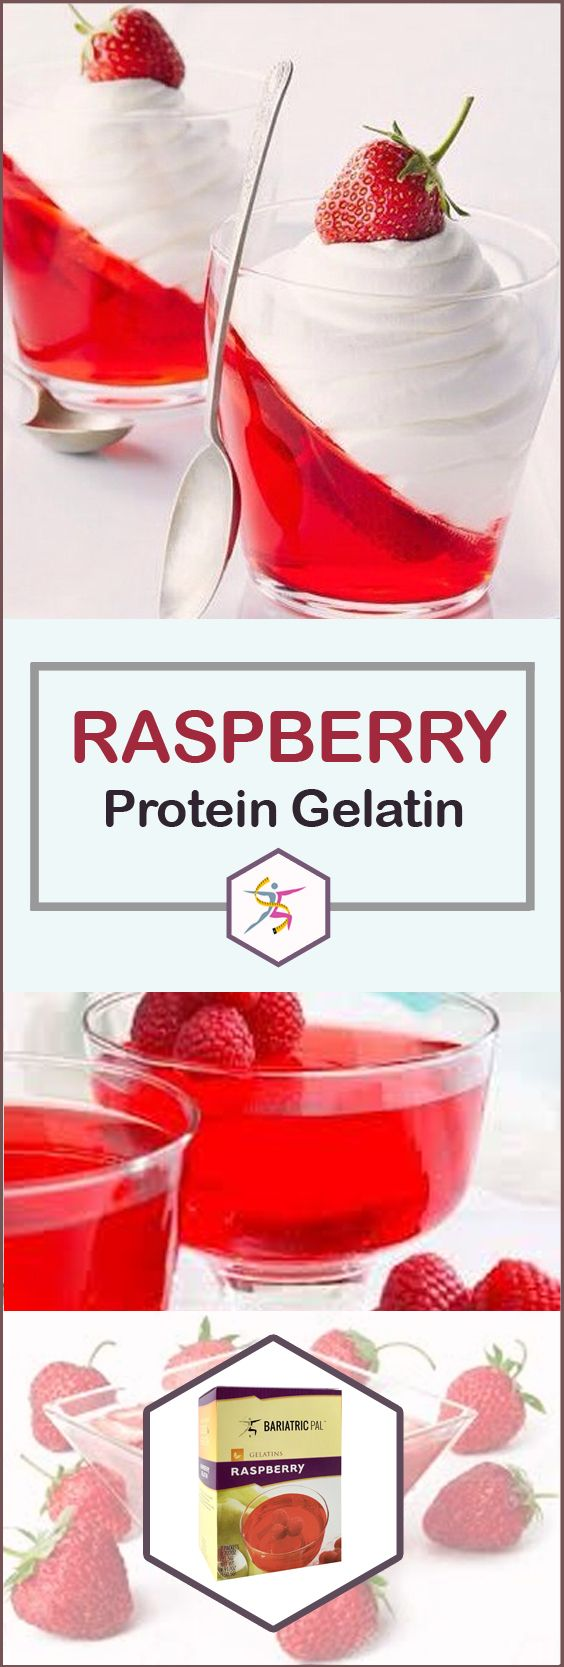 Extra protein can reduce hunger, and here's how you can get it on your bariatric surgery diet. BariatricPal Protein Gelatin Raspberry has a sweet-tart taste that can be satisfying and refreshing. You may want to stock up for your pre-op or post-op liquid diet, or for those days when you need an easy, guilt-free treat.